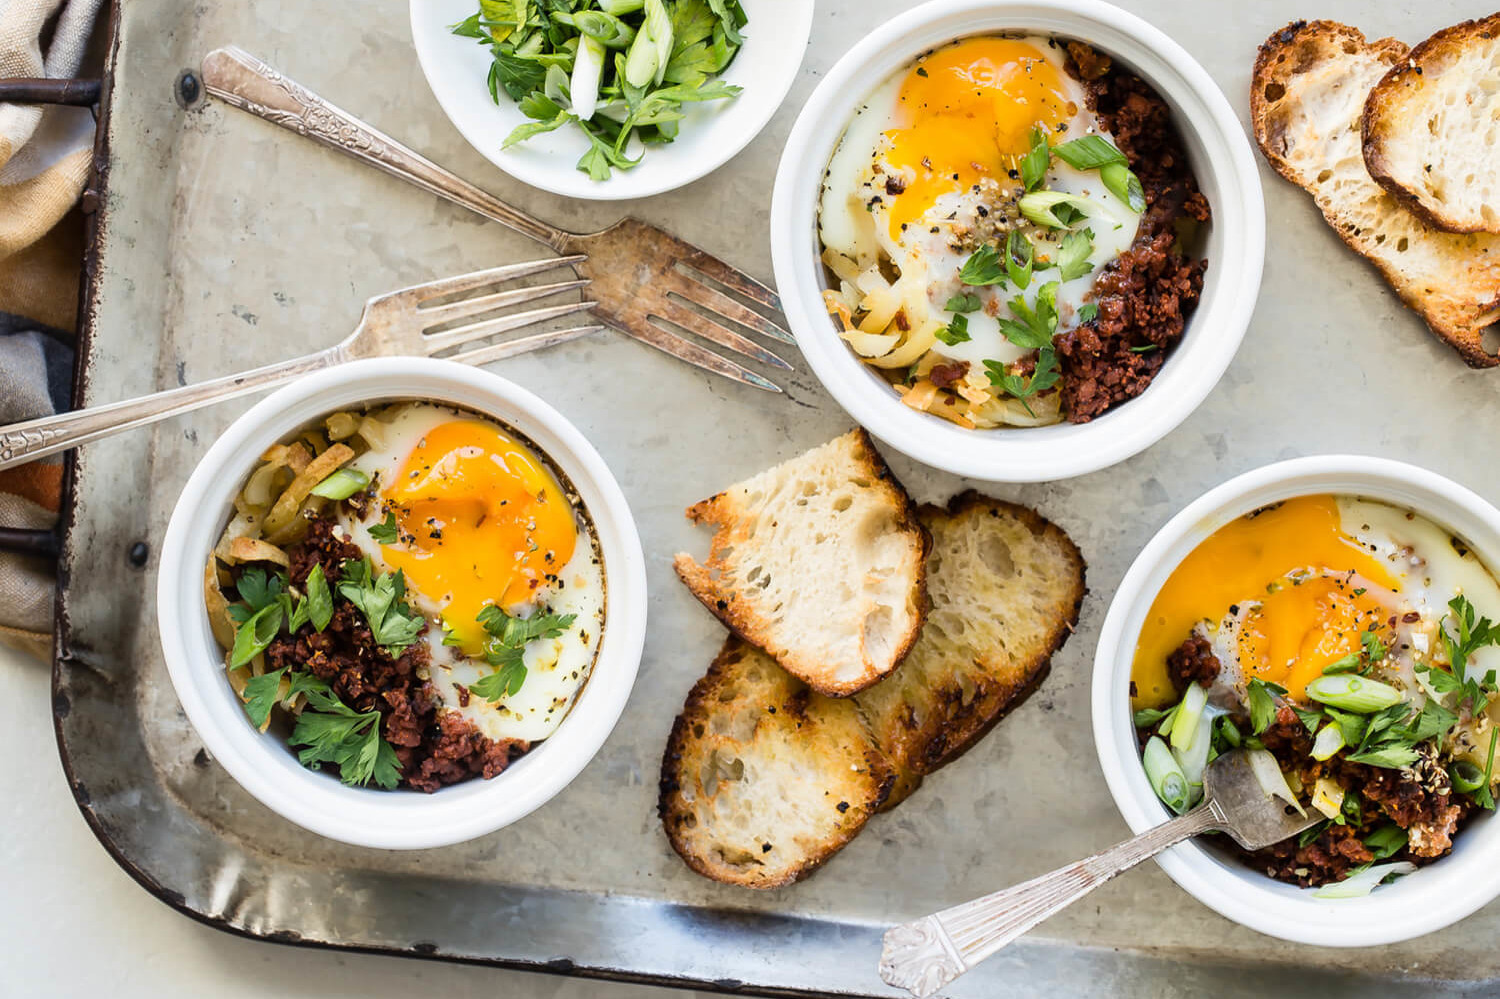 Organic eggs with runny yolks atop browned chorizo and hash browns. Each portion is baked in its own ramekin and served with toast on the side. | peteandgerrys.com